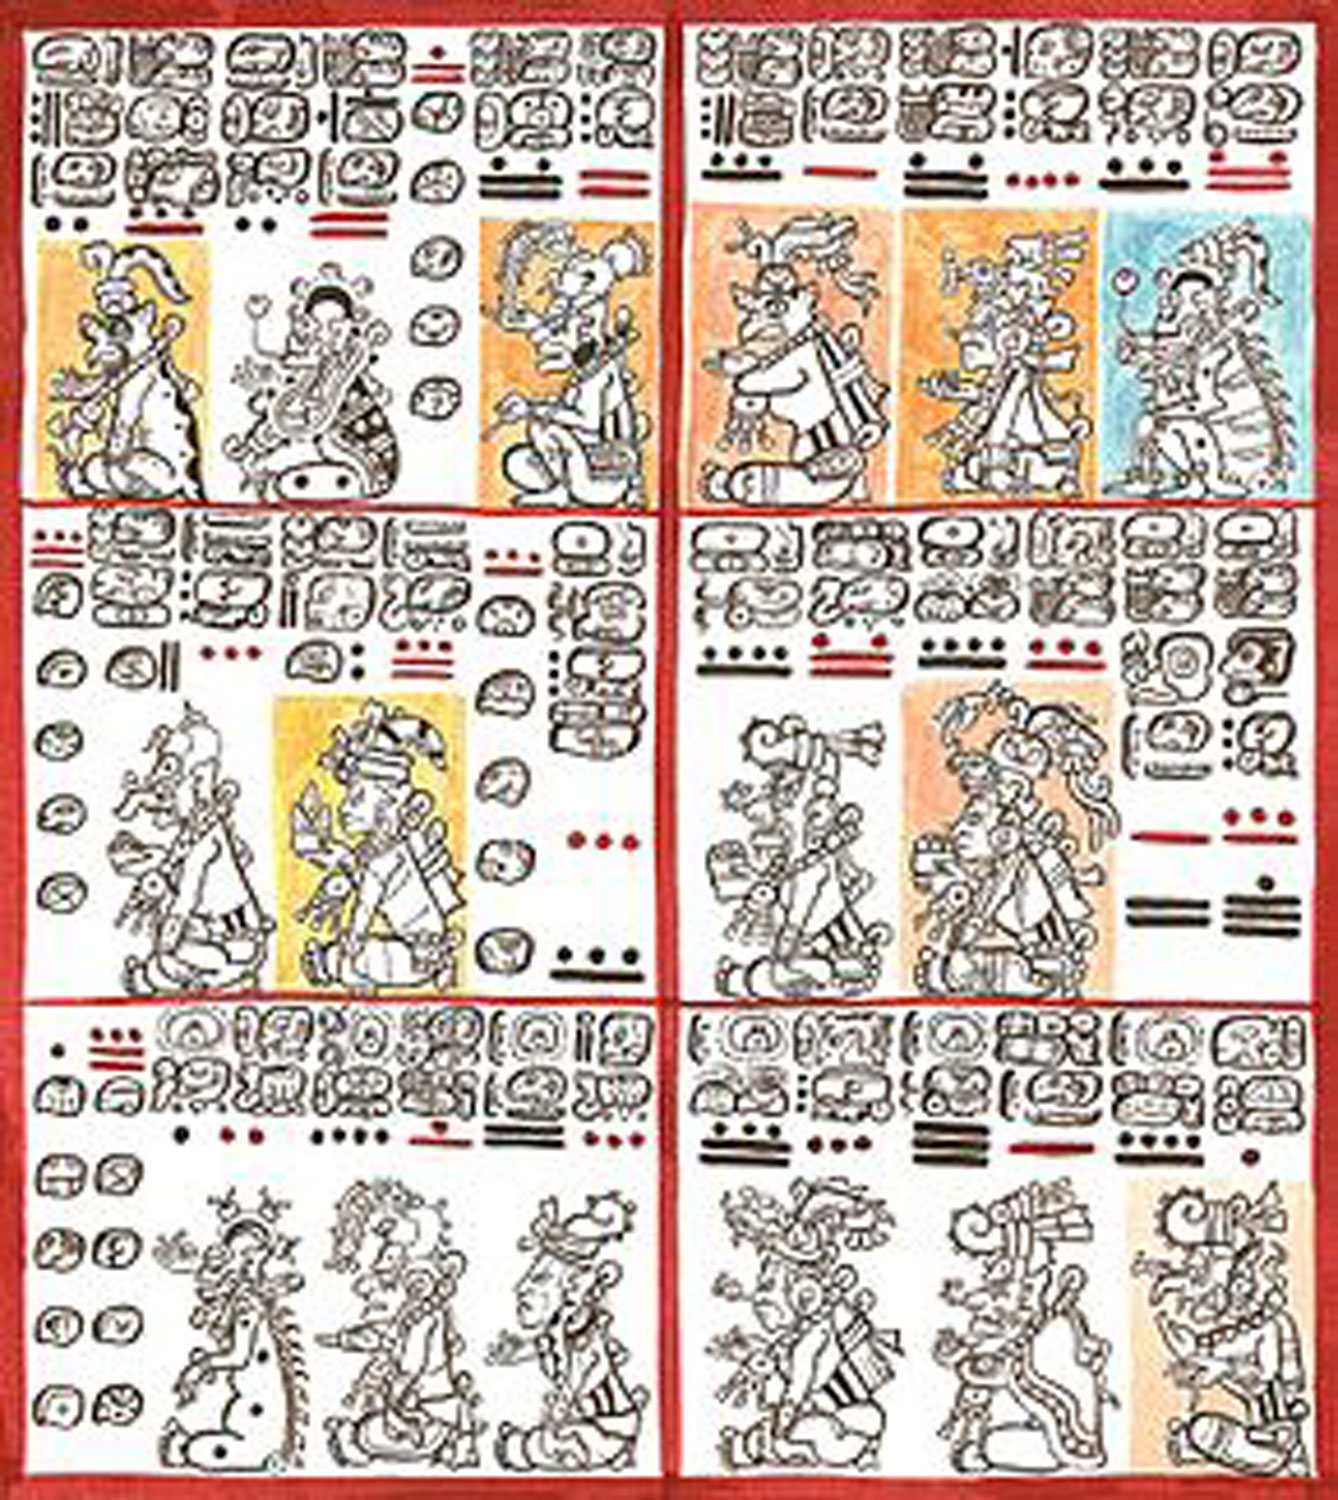 Dresden Codex, pages 10 and 11. Source:  wikipedia.org